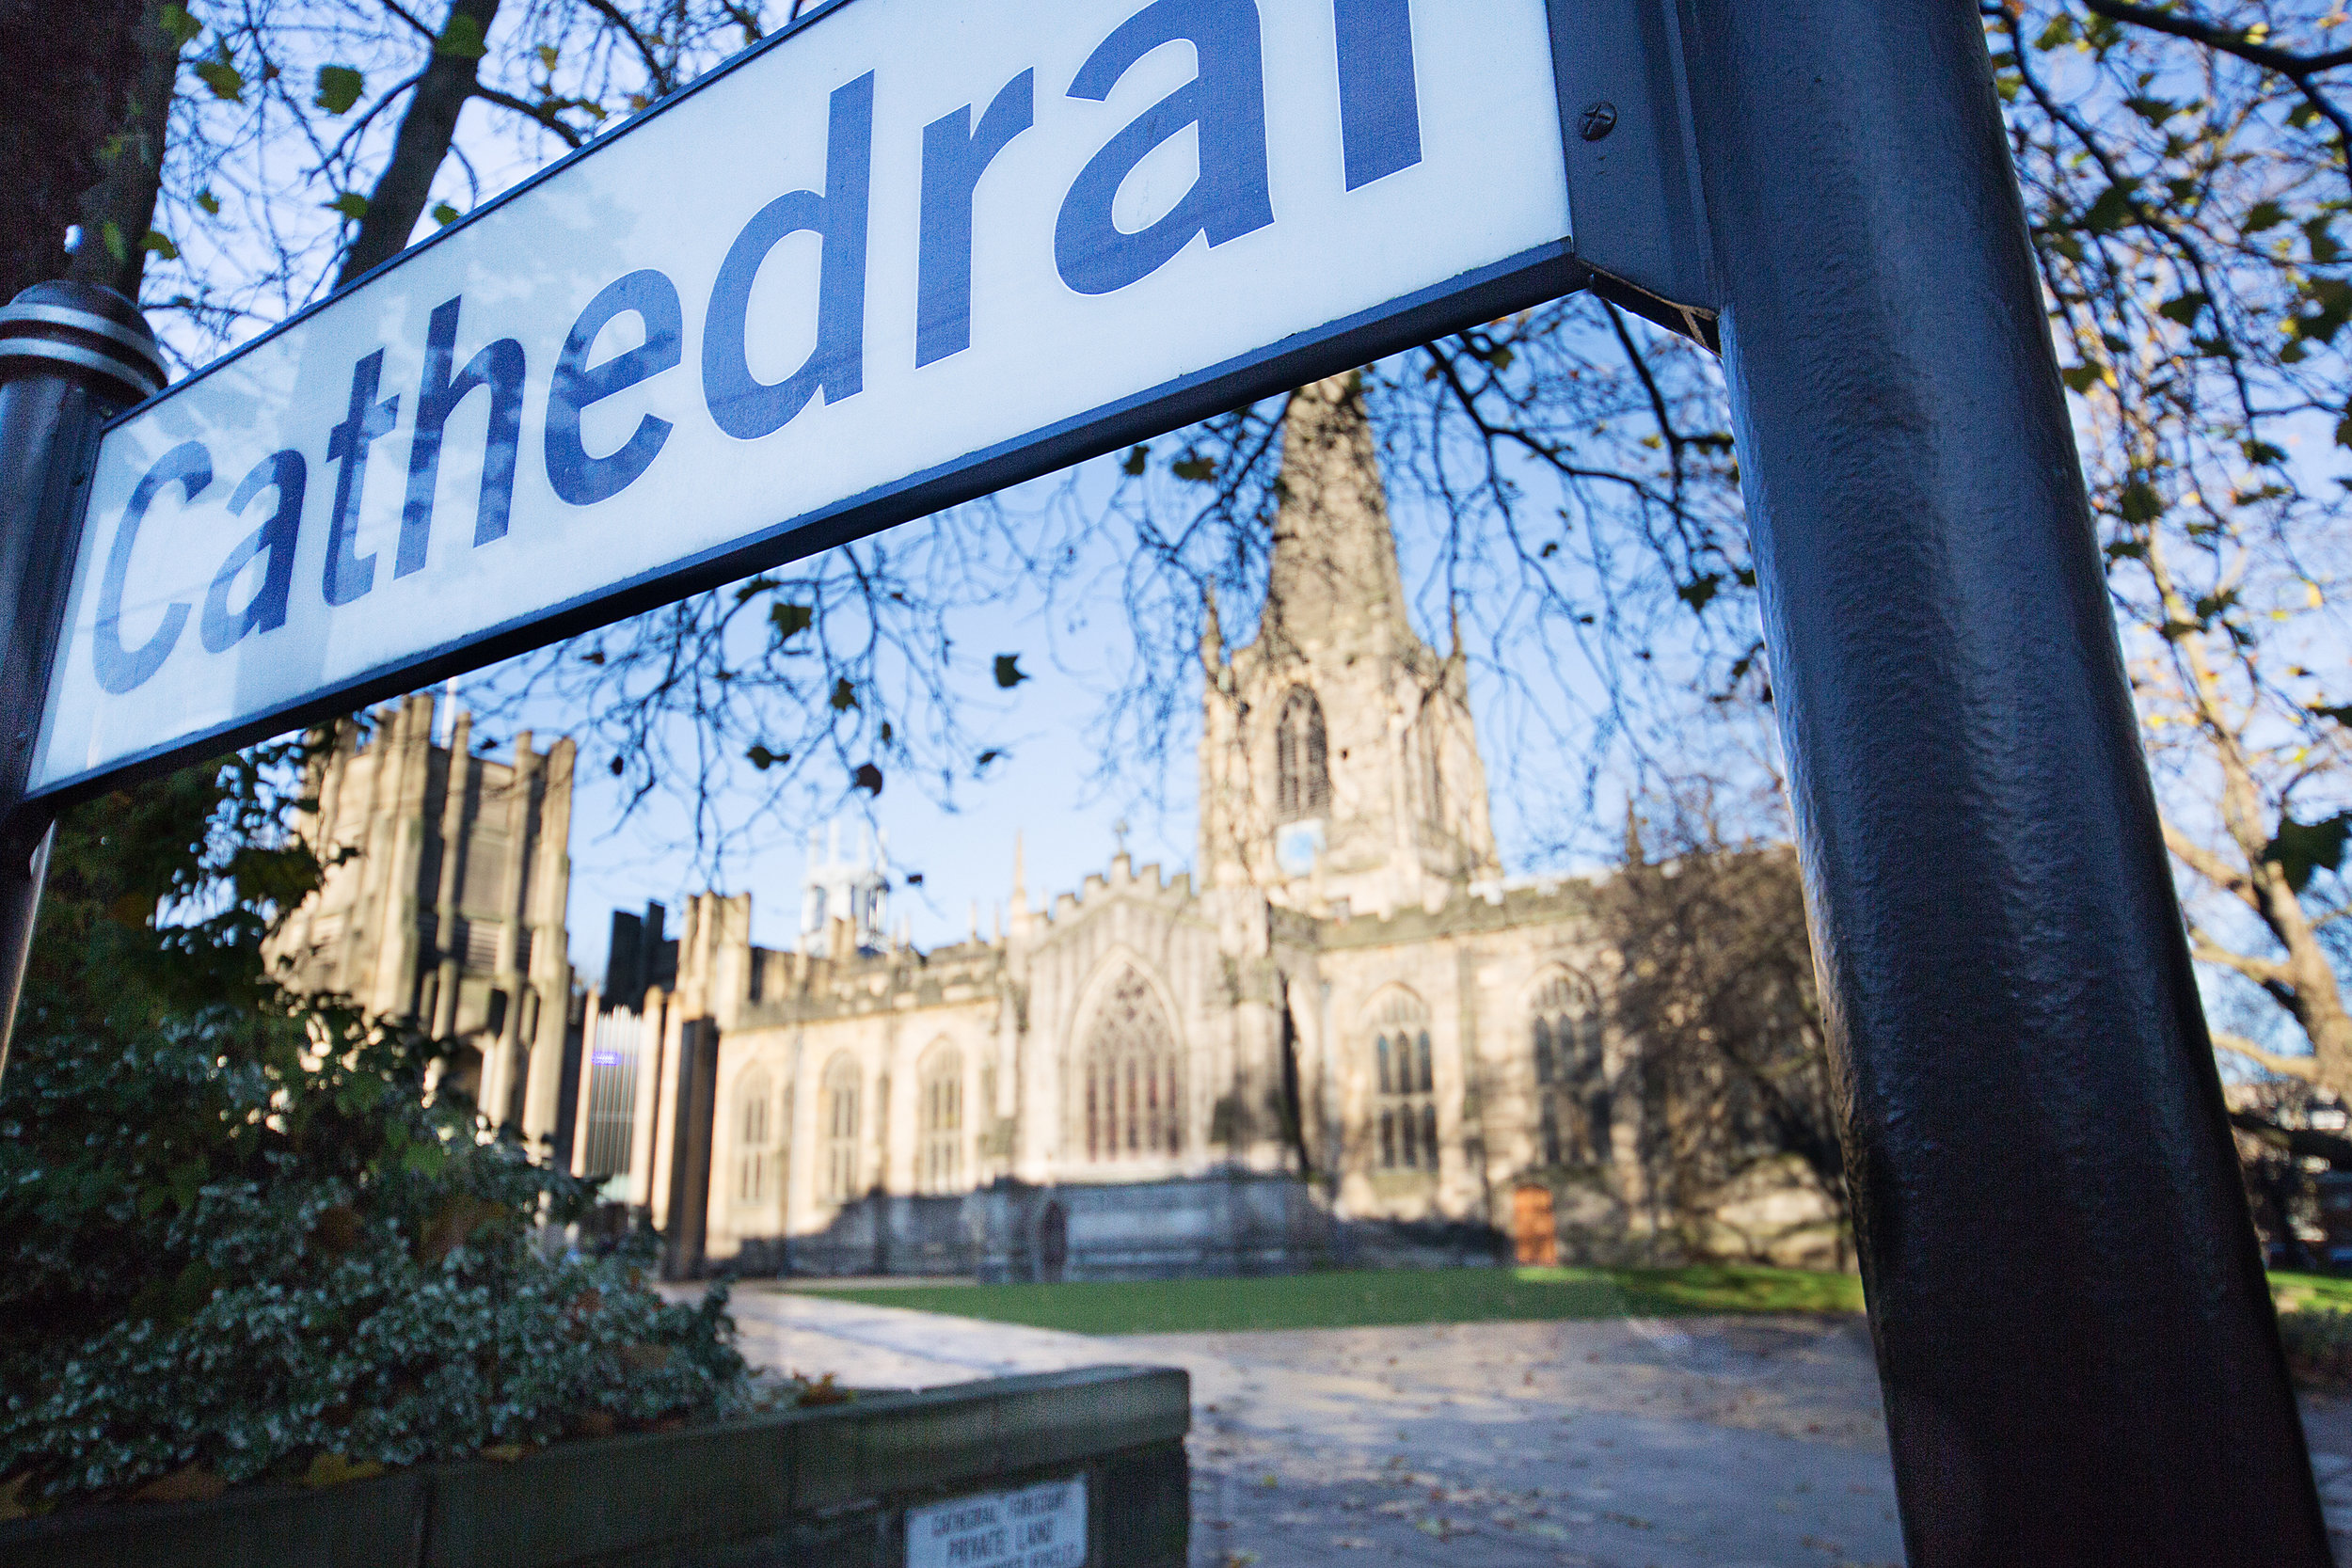 Sheffield Cathedral-039RS.jpg